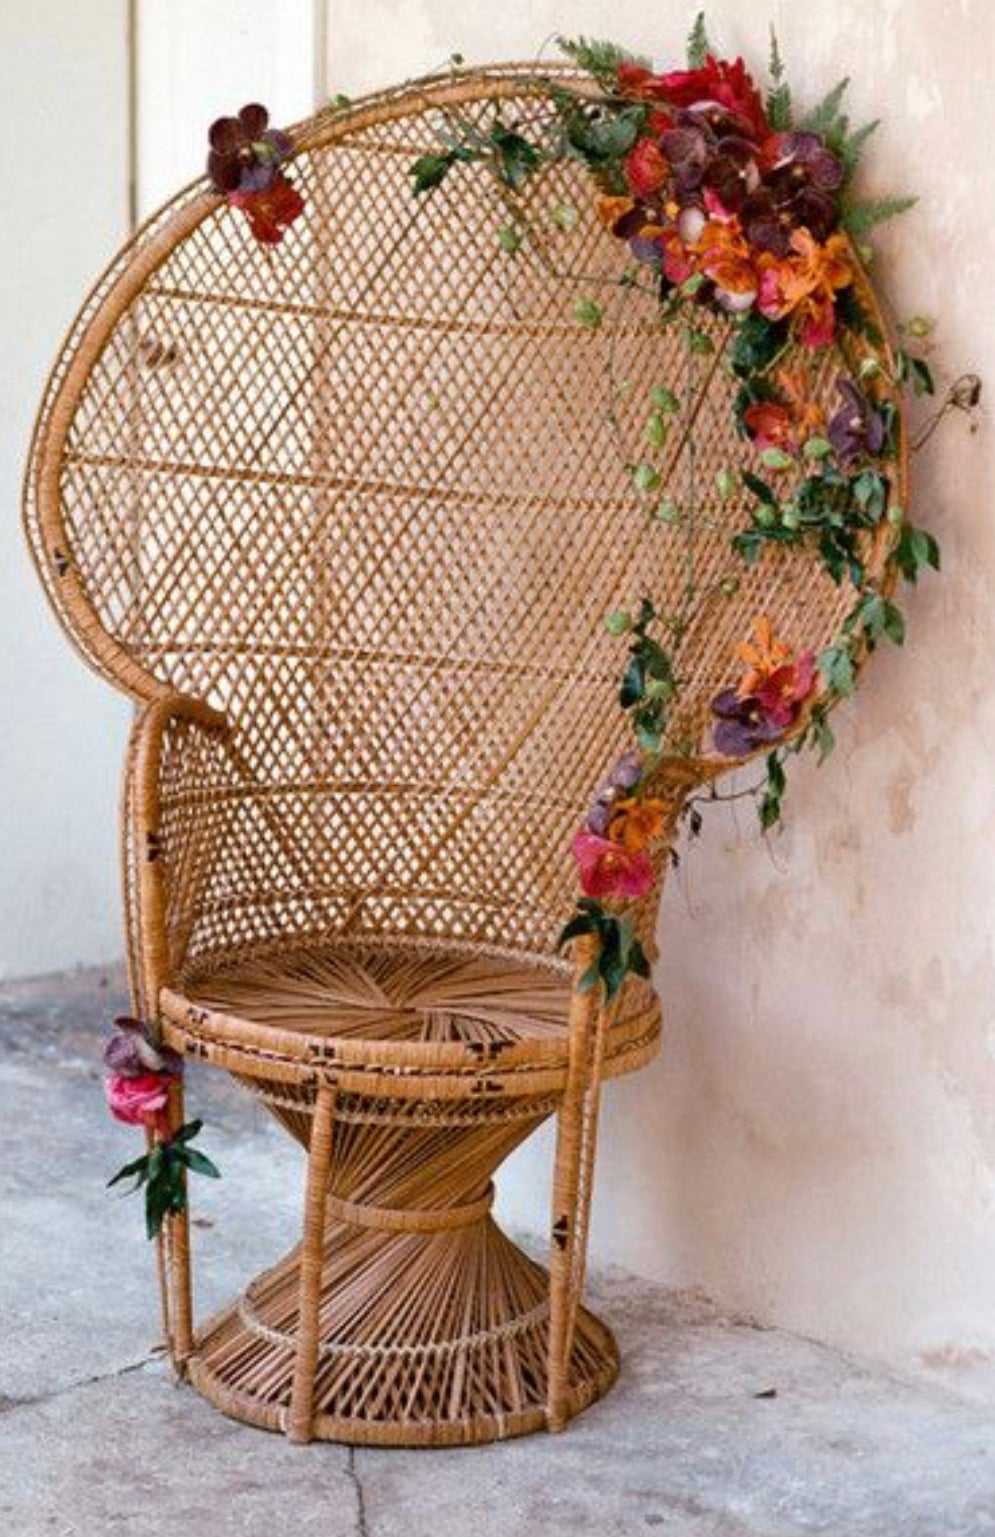 Peacock chair for rent